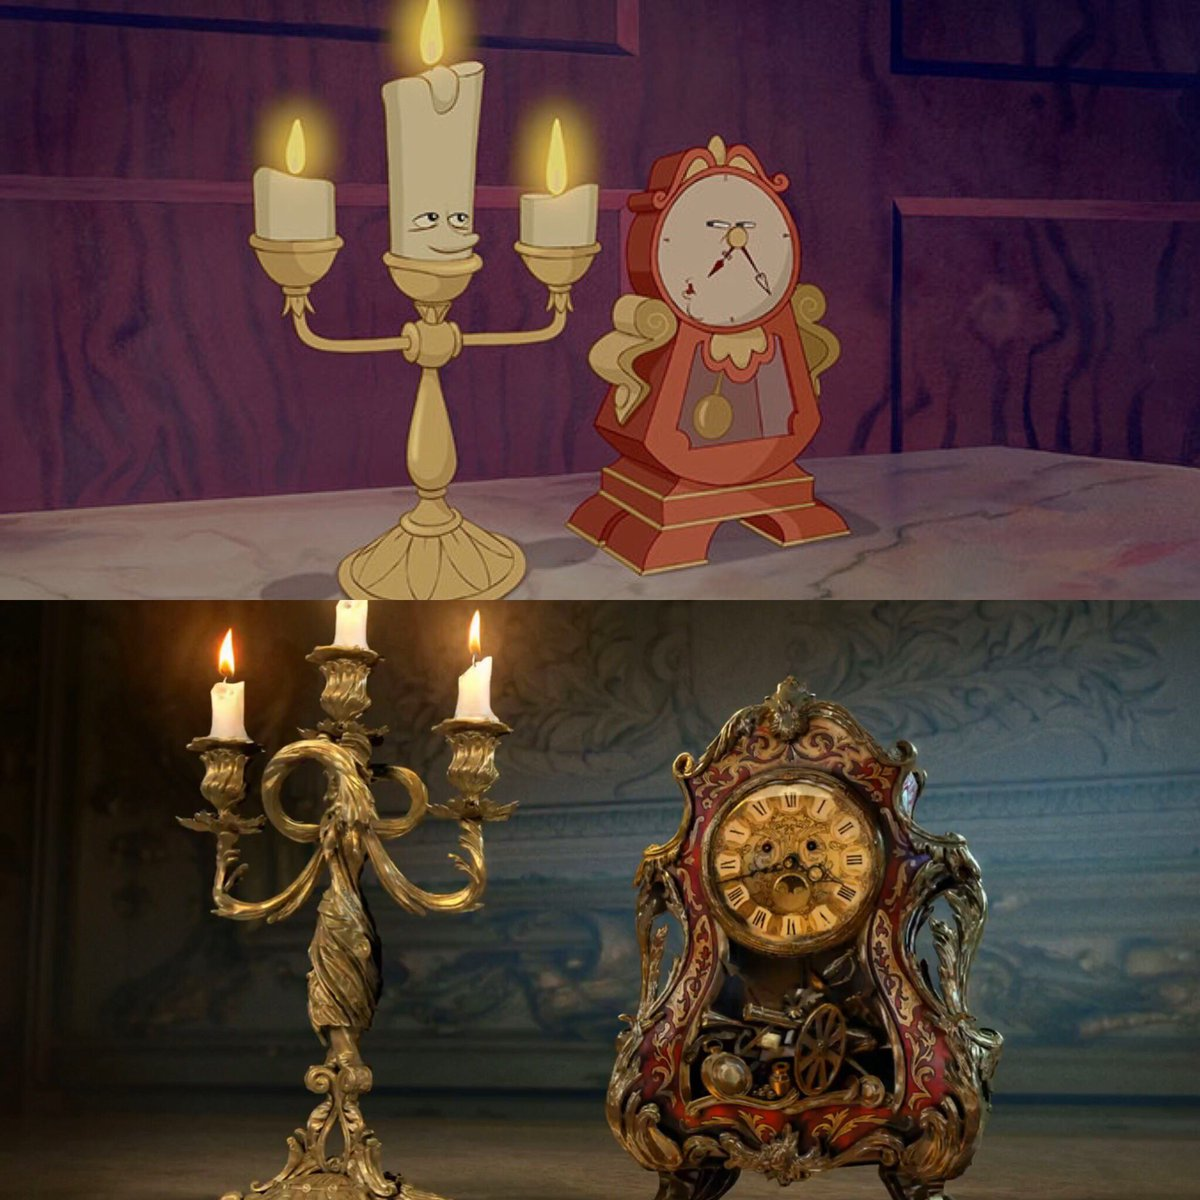 At First I Was Thrown Off But Then Realized That Having Giant White Eyes On A Candlestick Would Look Ridiculous In Live Action So Making The Human